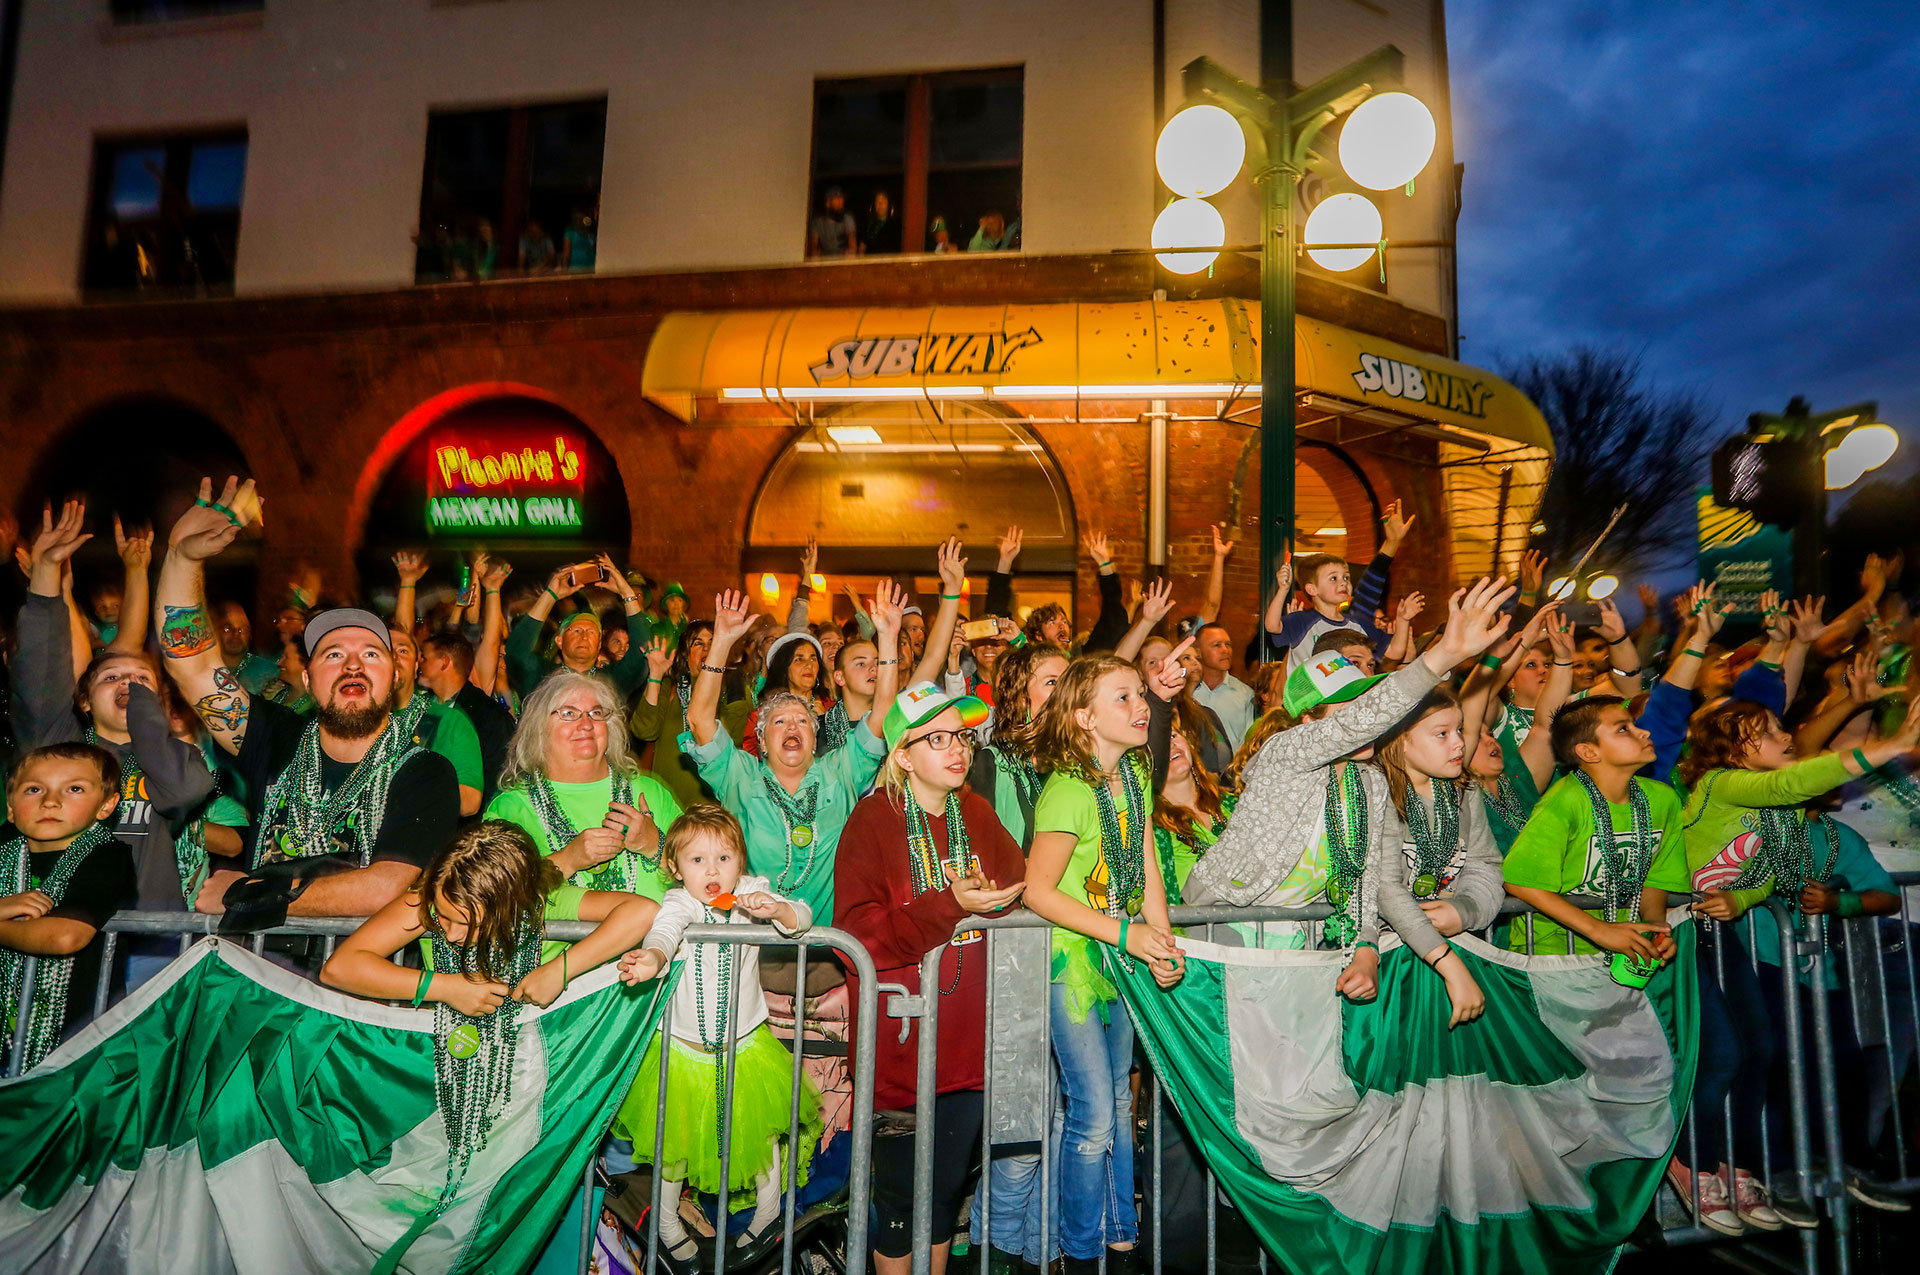 The World's Shortest St. Patrick's Day Parade | Hot Springs National Park, AR